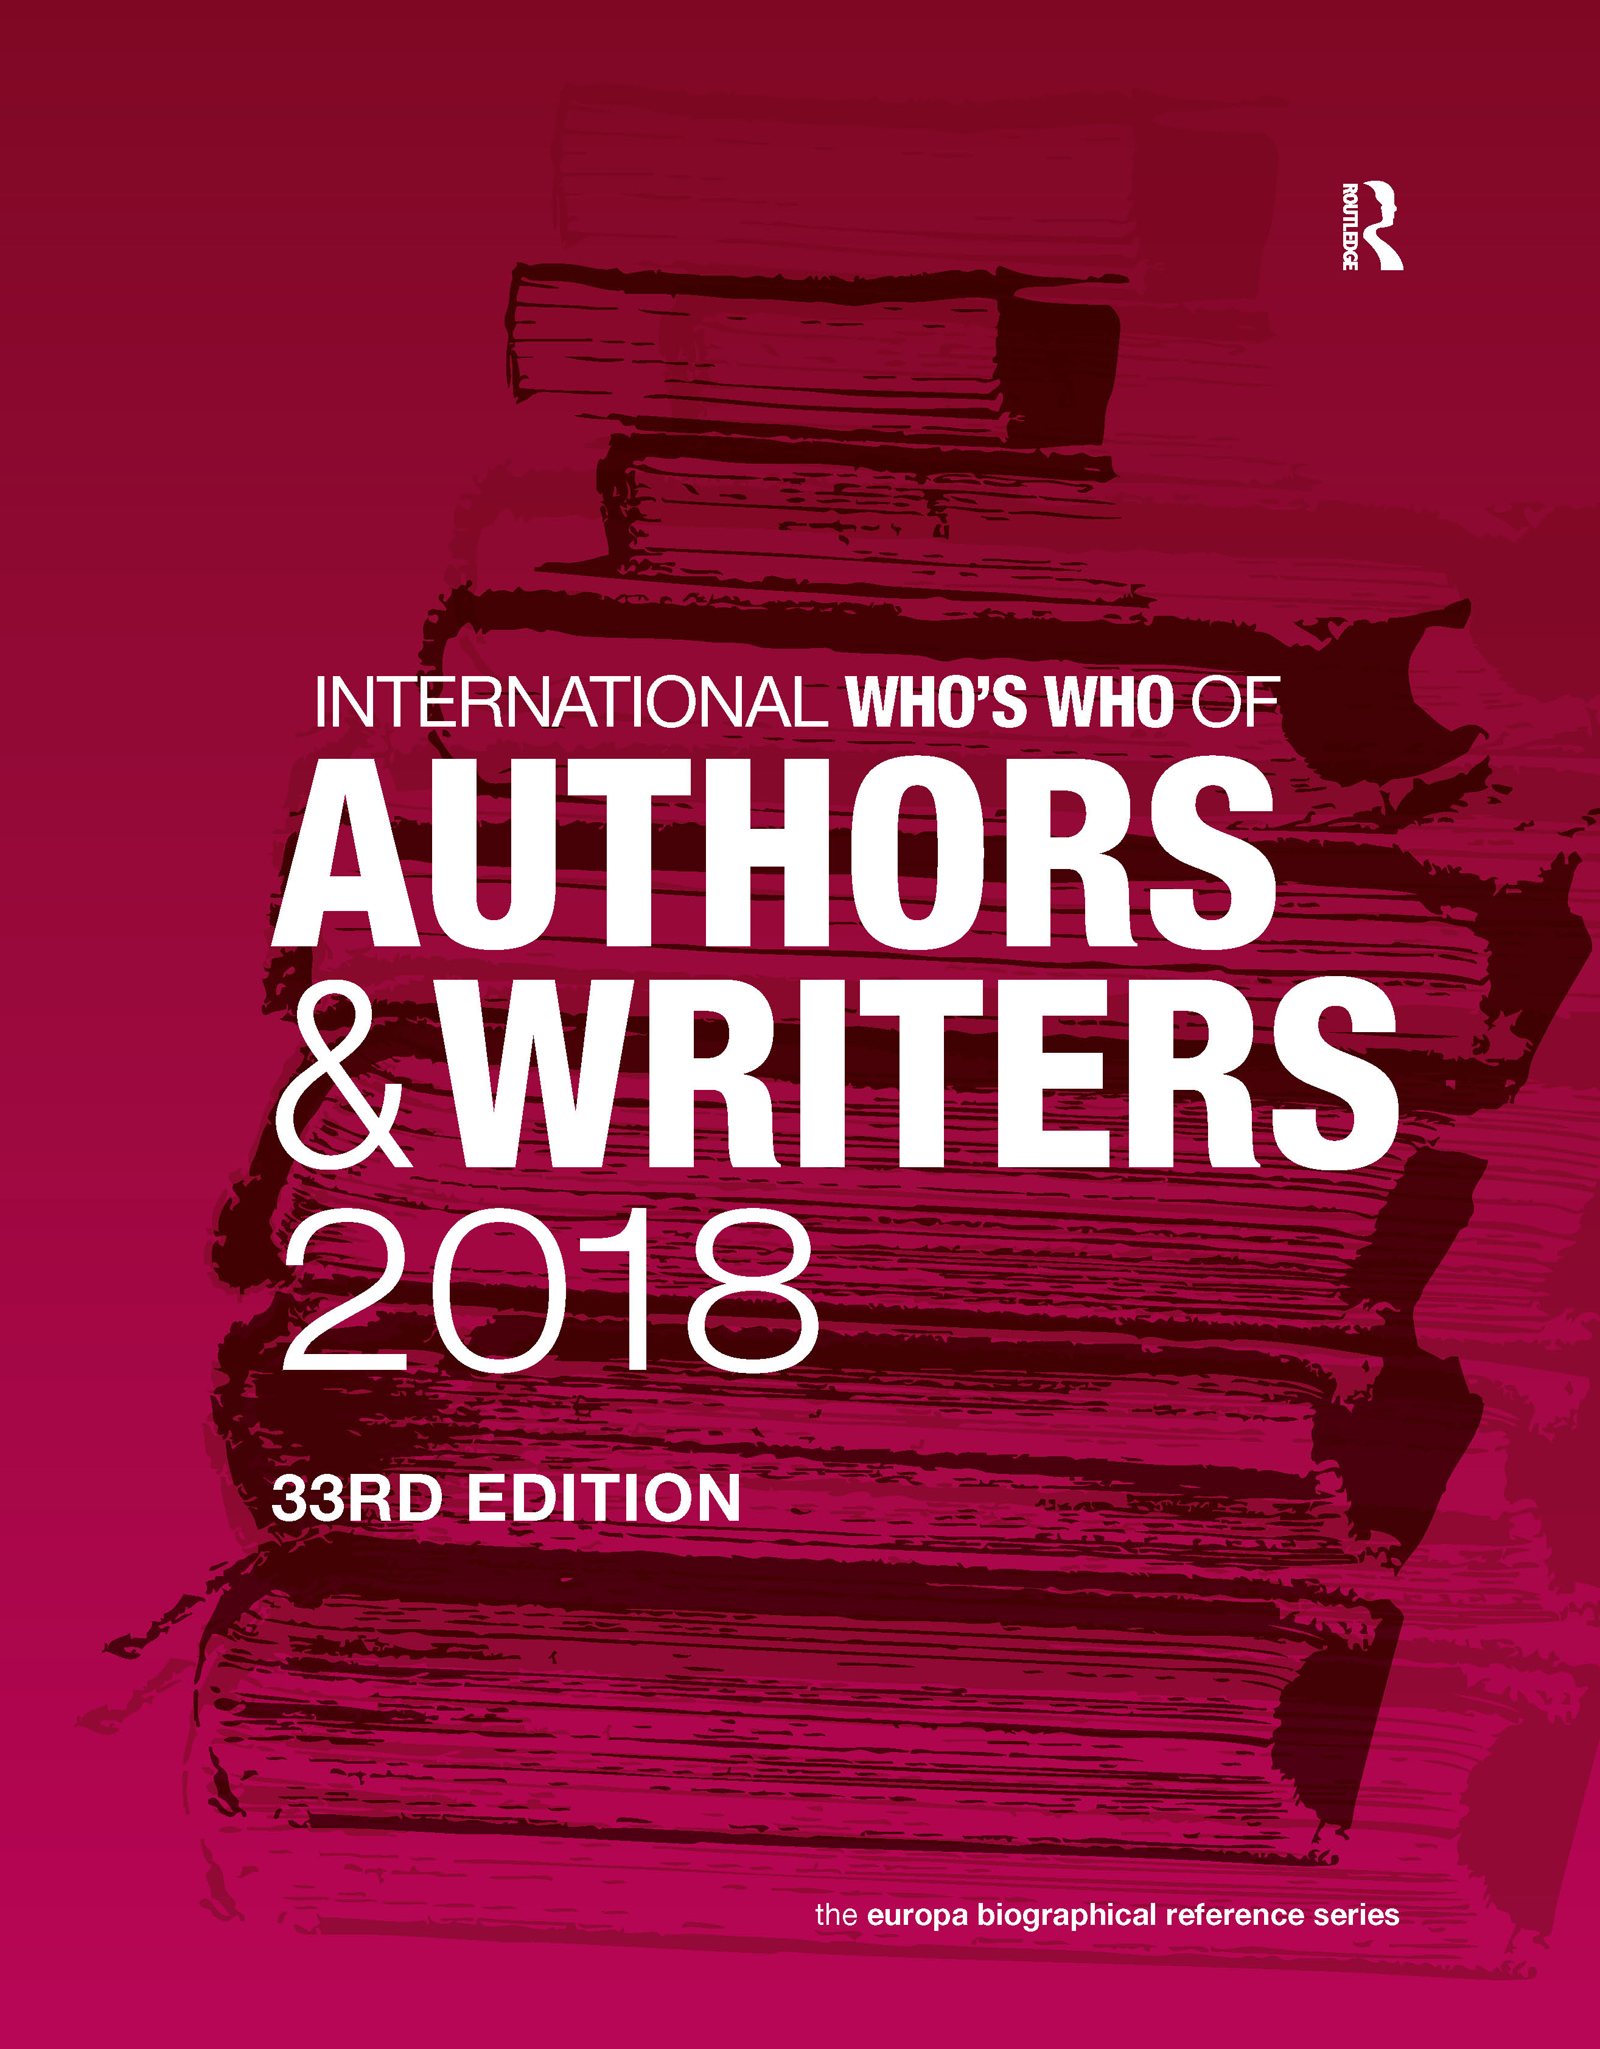 International Who's Who of Authors and Writers 2018 book cover